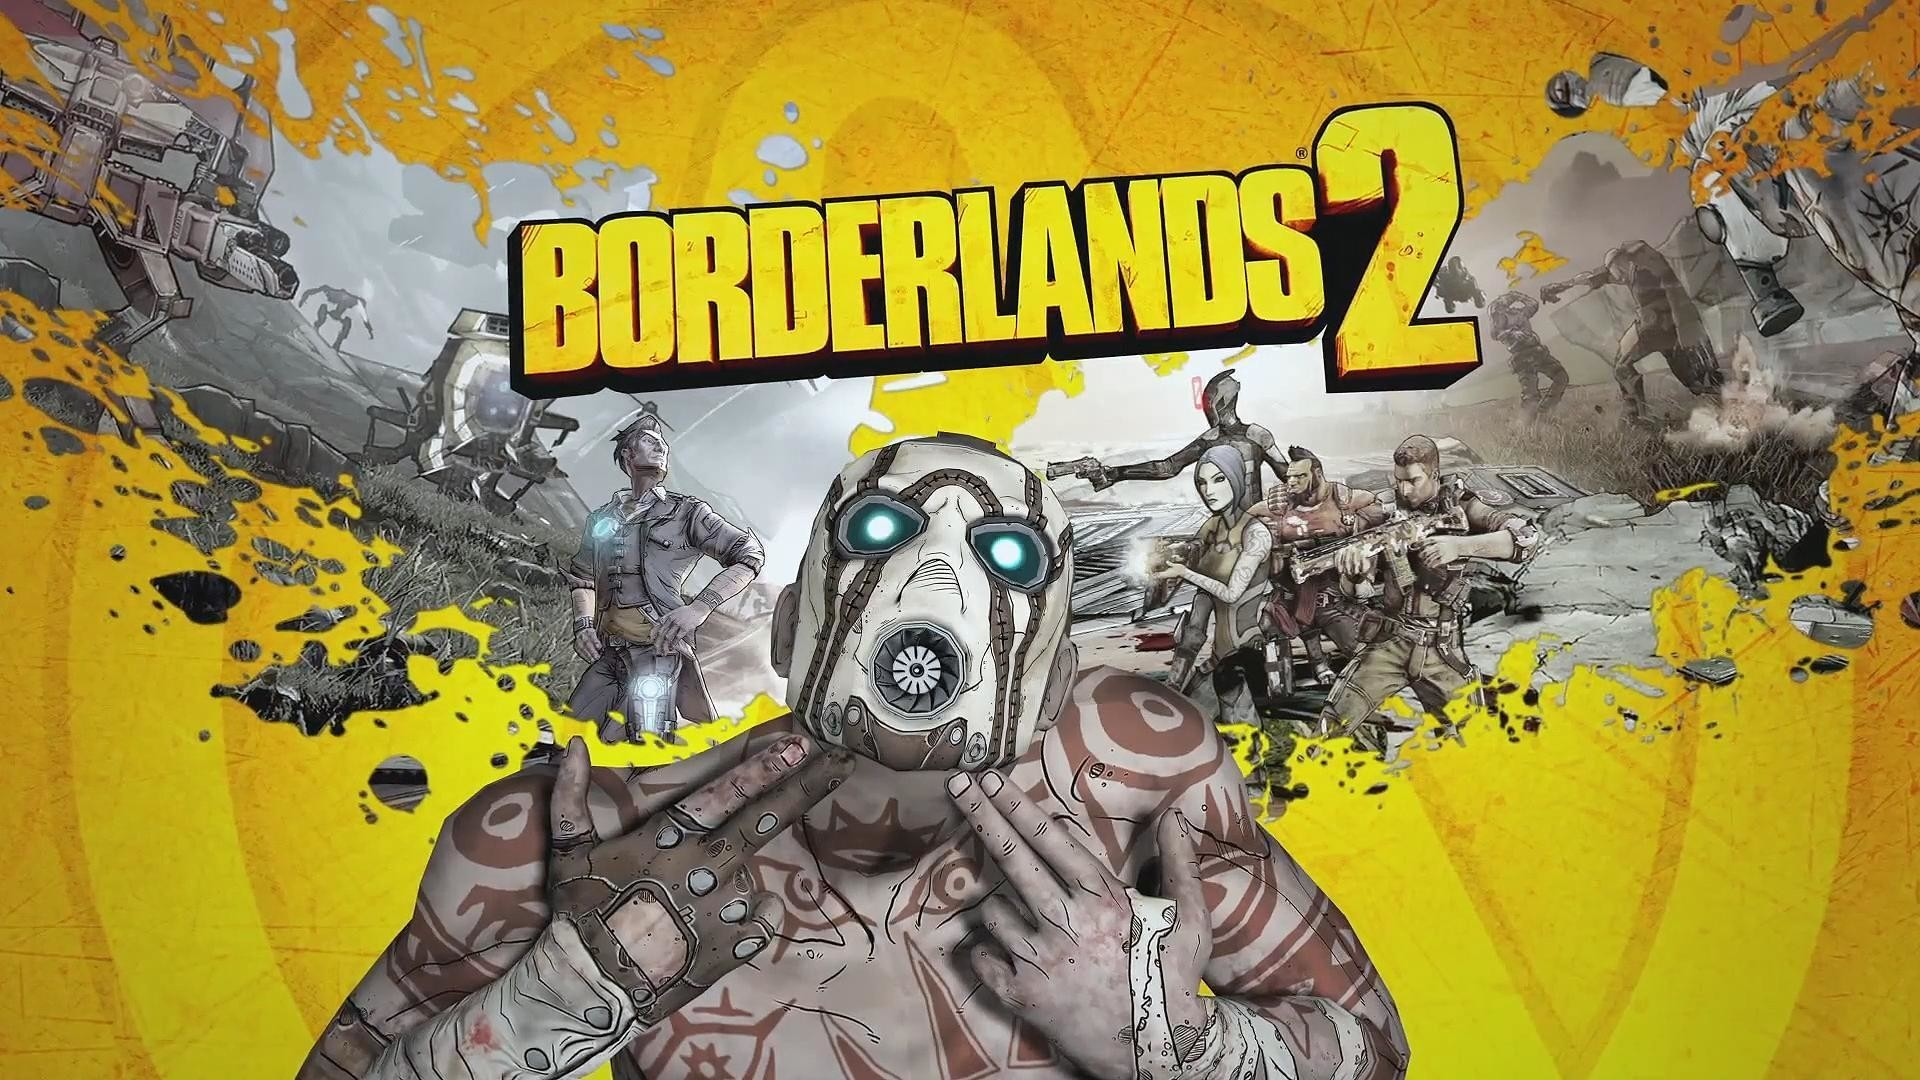 Borderlands 2 Wallpaper 1920x1080 ·① WallpaperTag